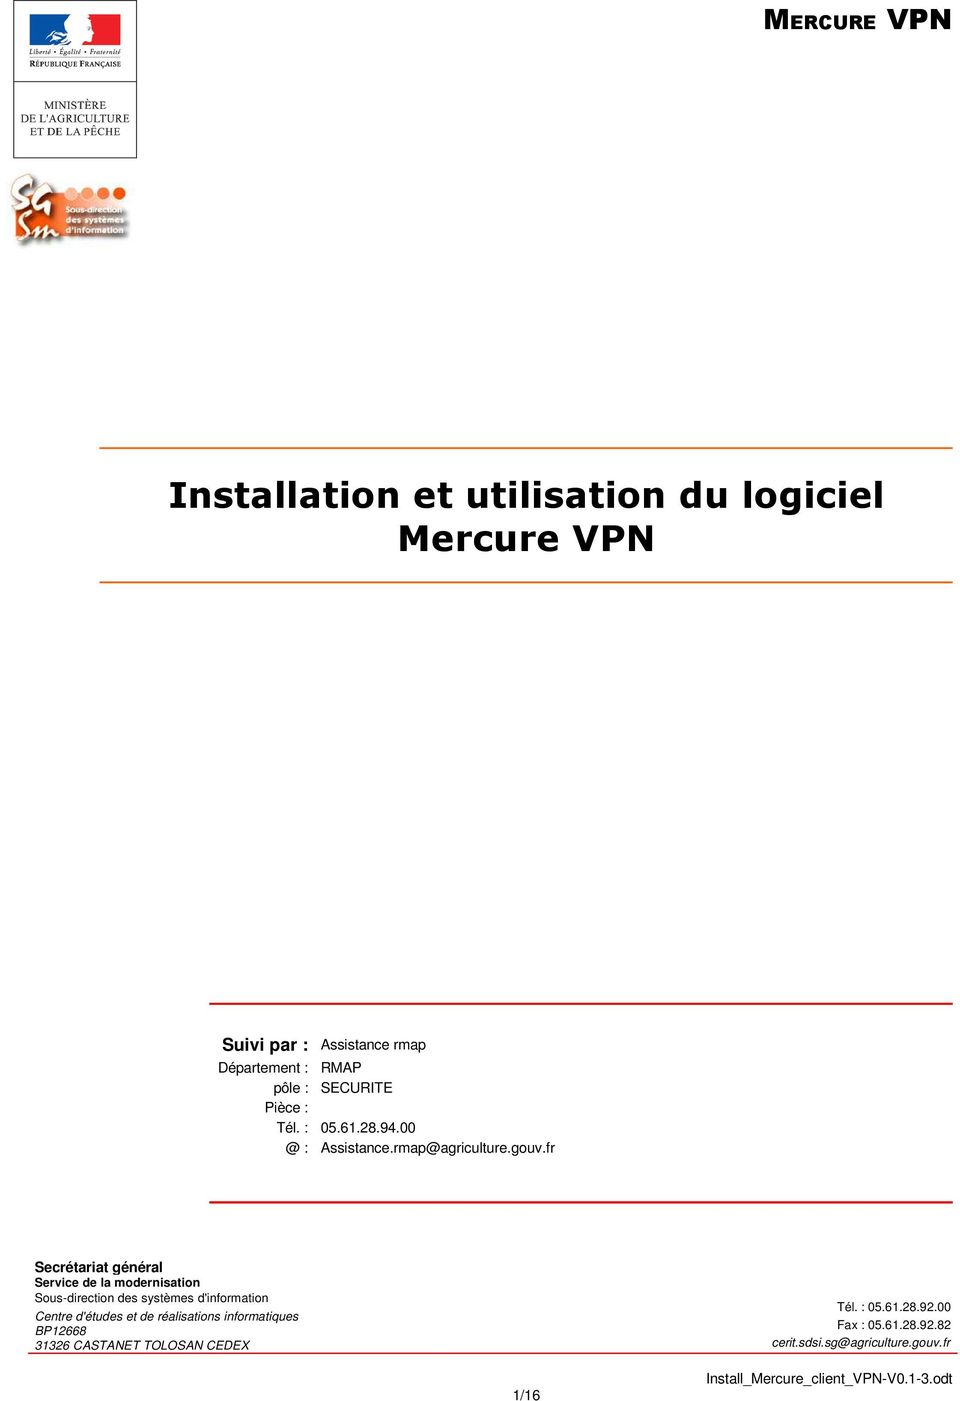 mercure vpn